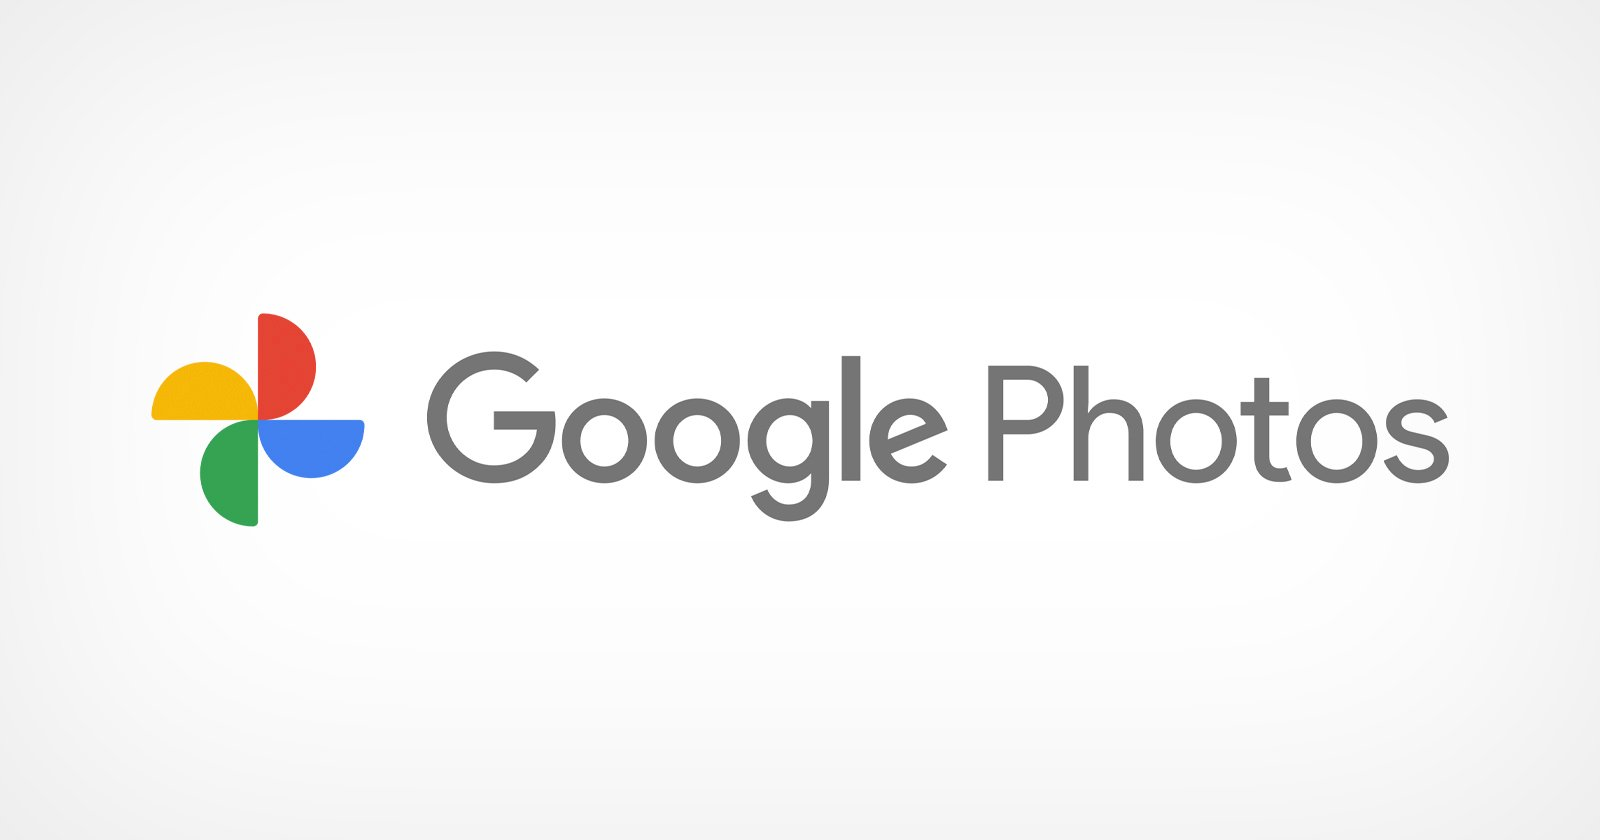 Google Photos Contradicts 'High Quality' Promises With Recent Messaging